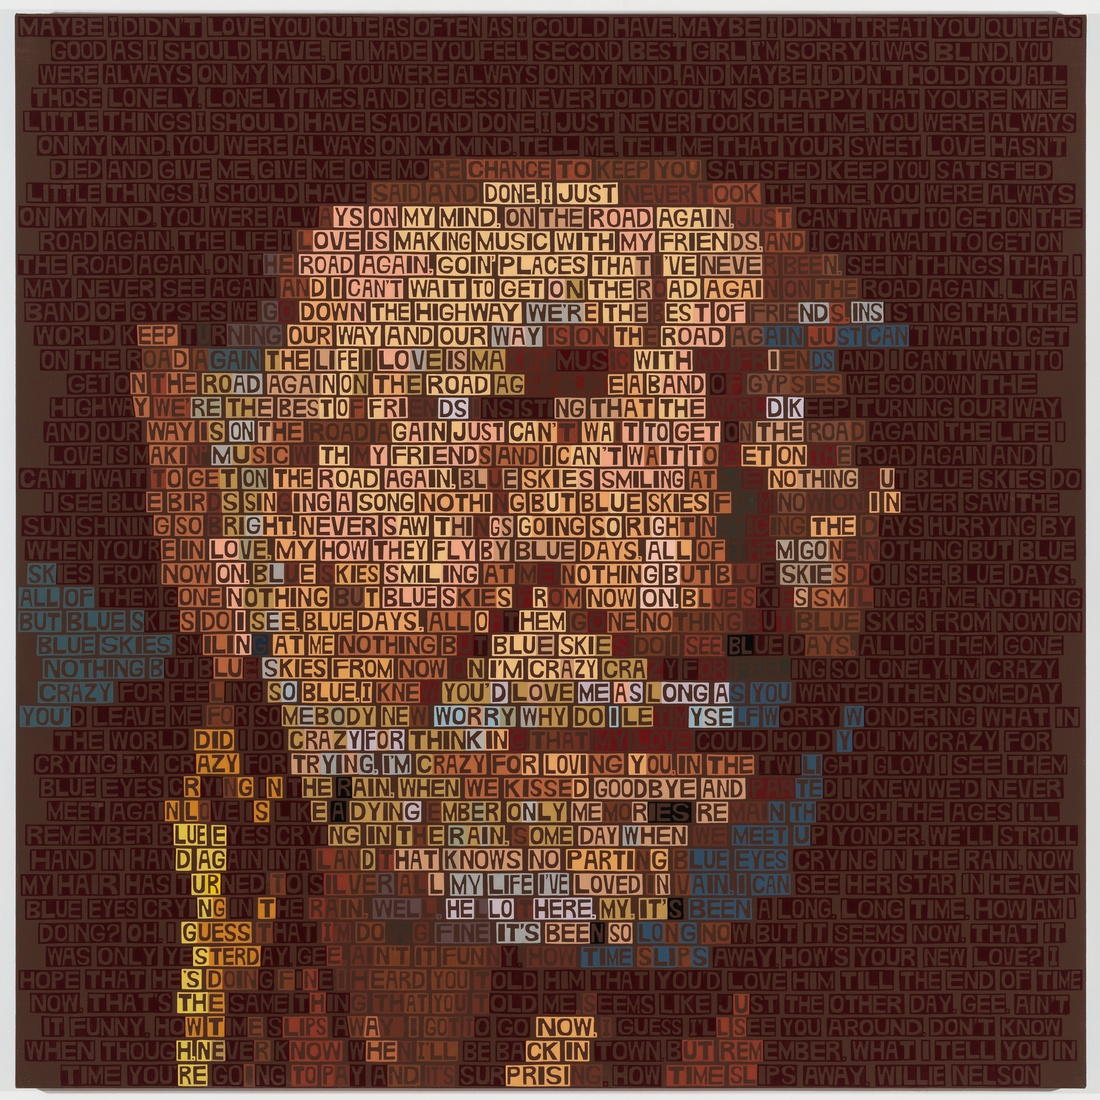 Paintings Willie Nelson (The Life I Love)